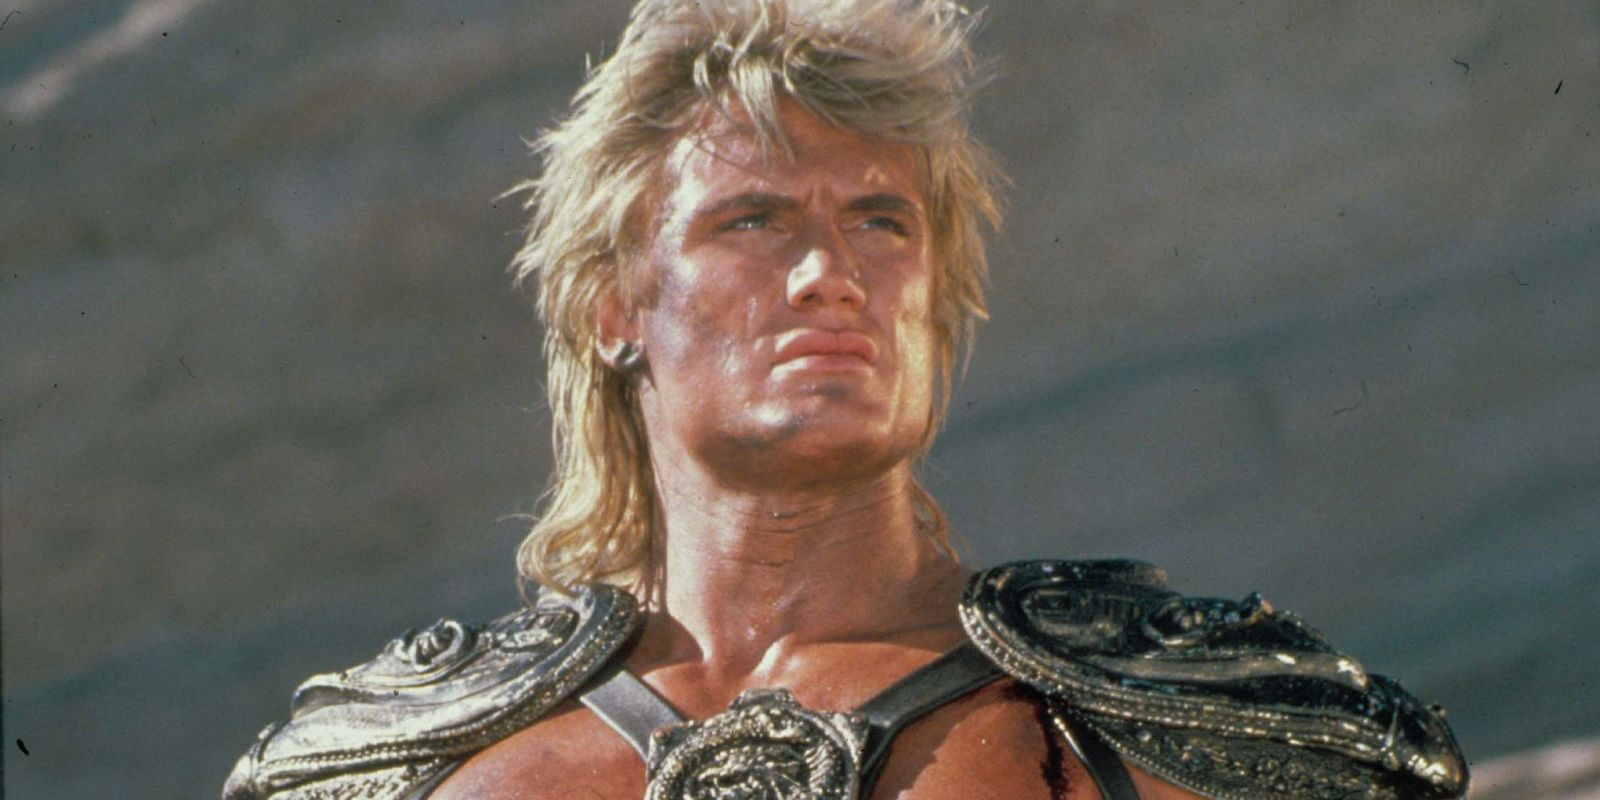 Image result for masters of the universe film dolph lundgren